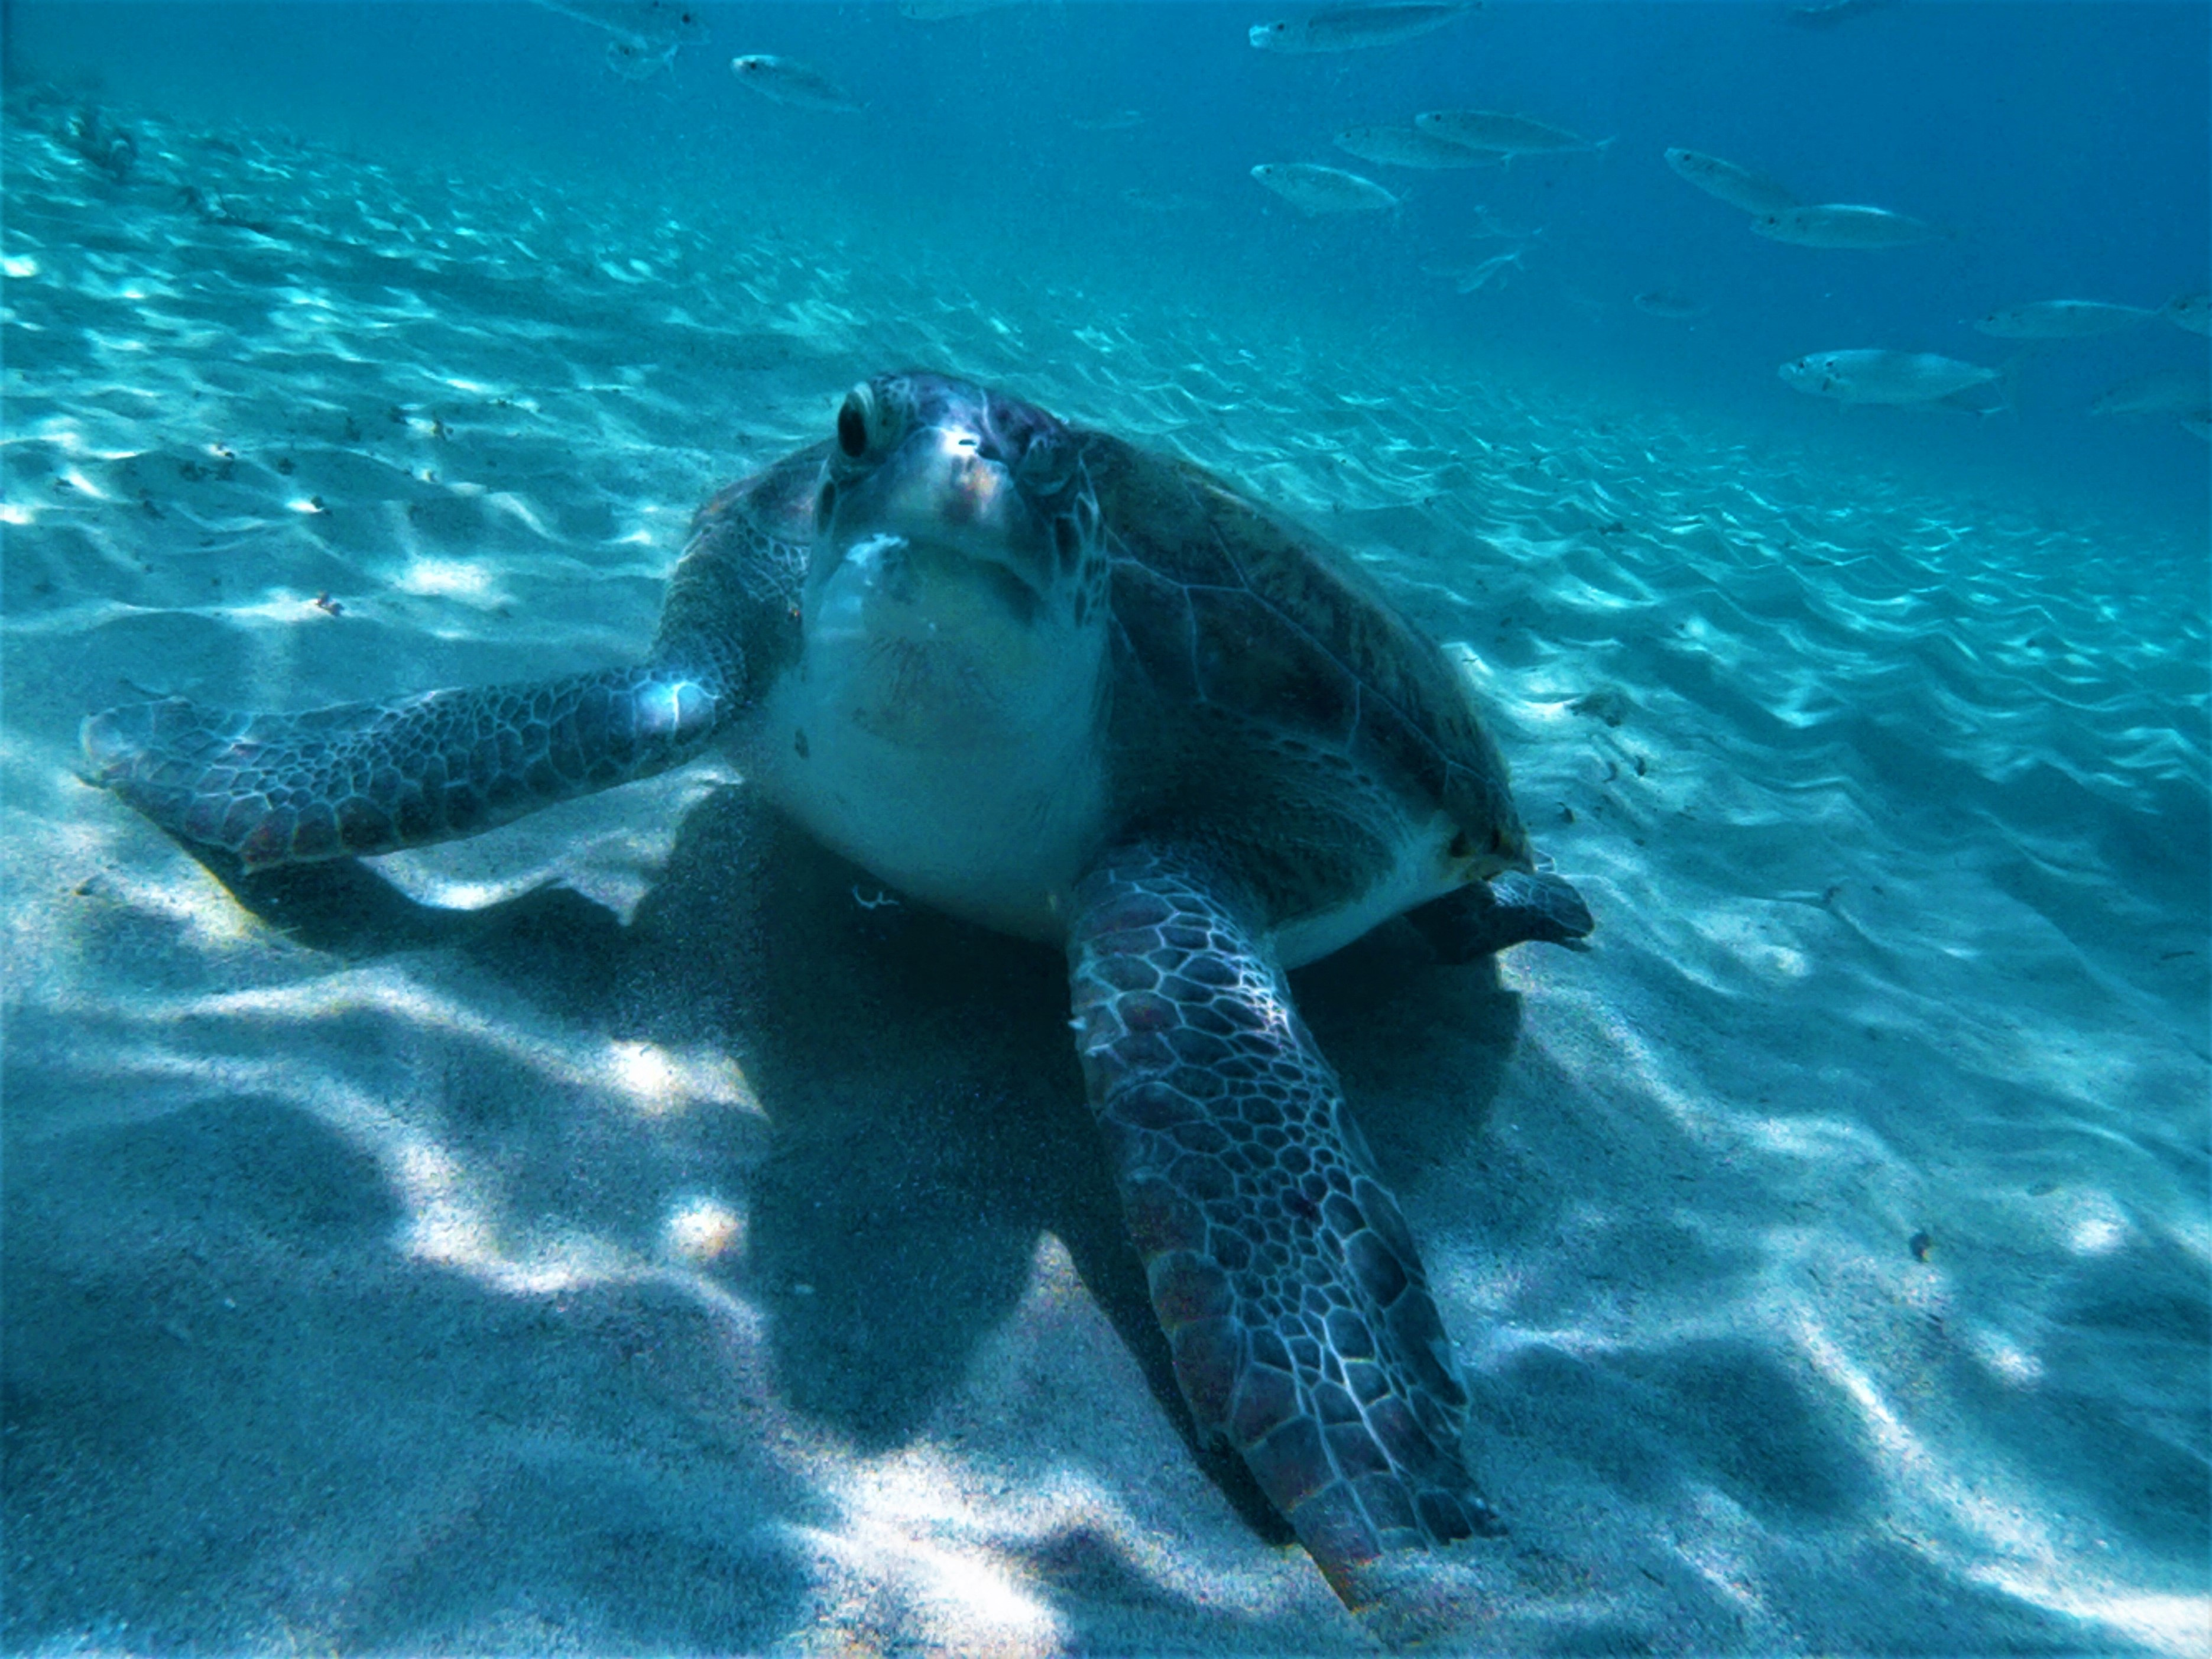 Turtle Spotting Diving Day Theme: